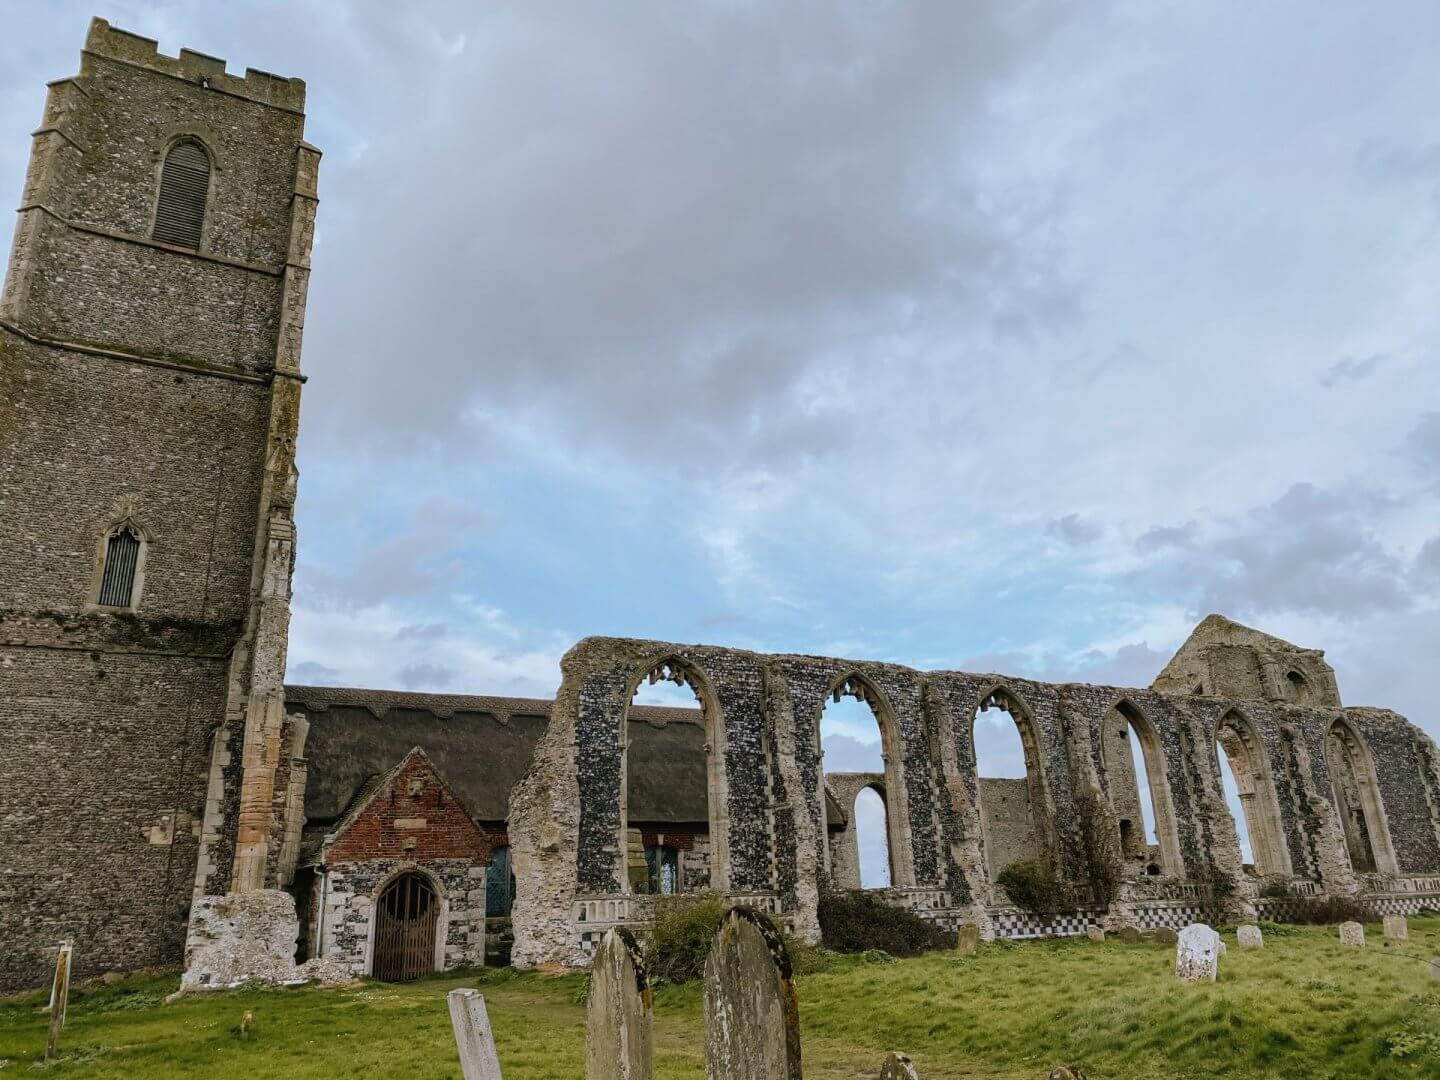 image of church ruins in Covehithe, Suffolk